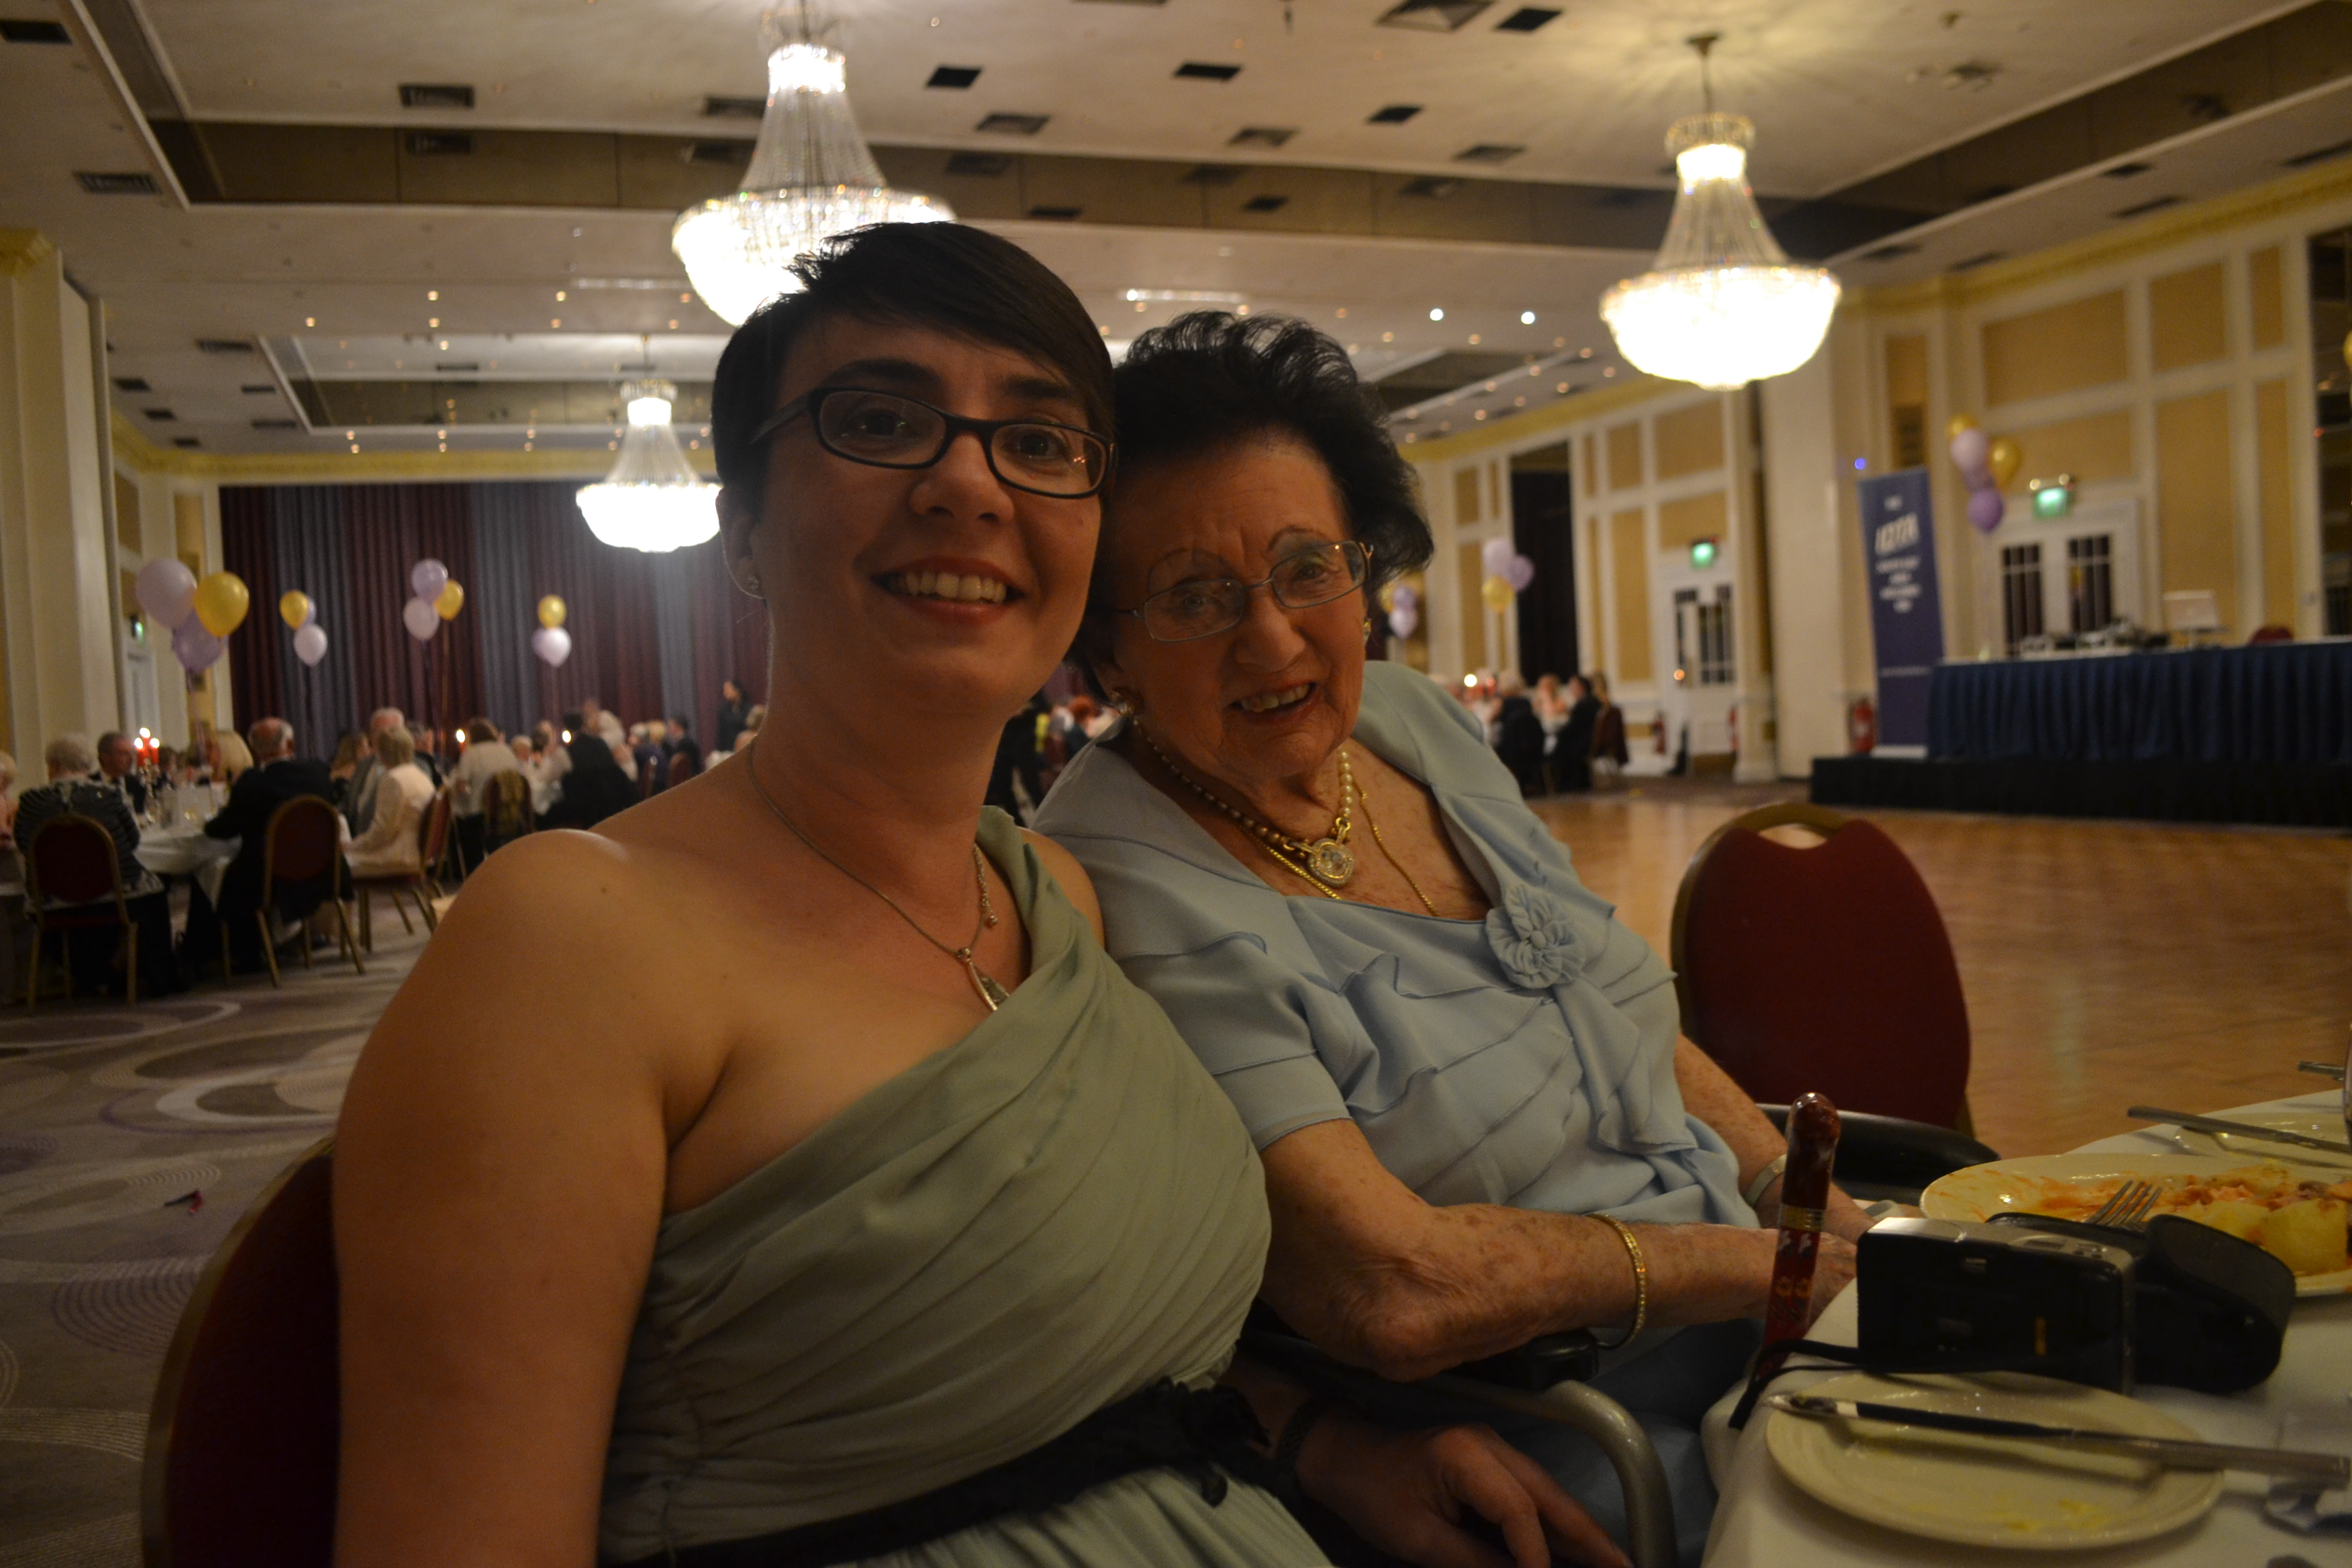 May 17th IDTA Dinner Dance